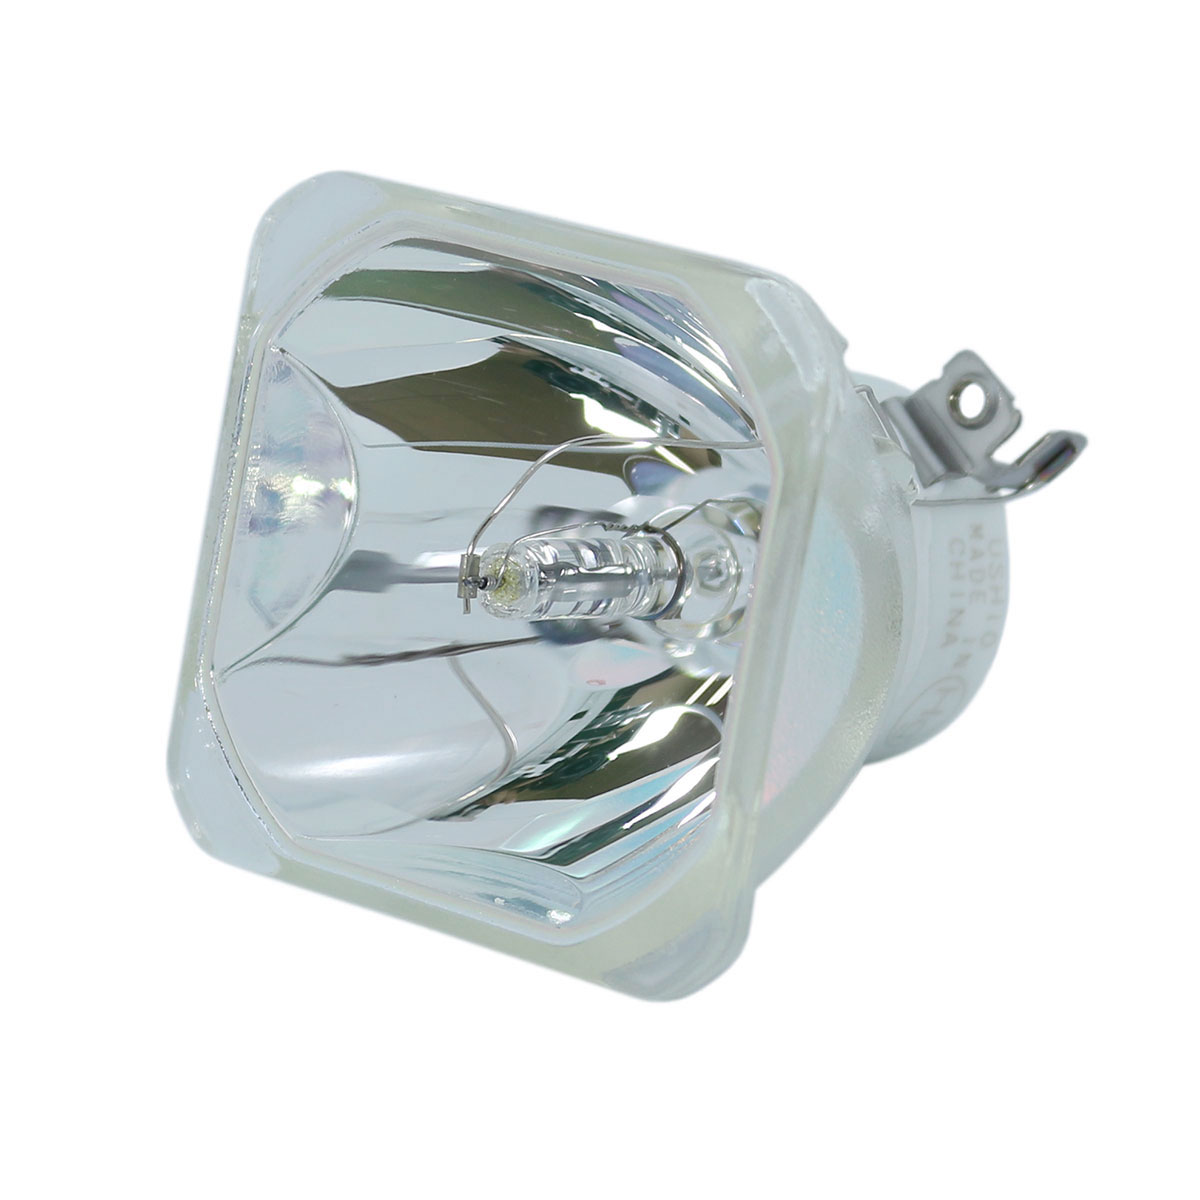 Lutema Economy Bulb for Panasonic PT-VX425NJ Projector (Lamp with Housing) - image 5 of 5